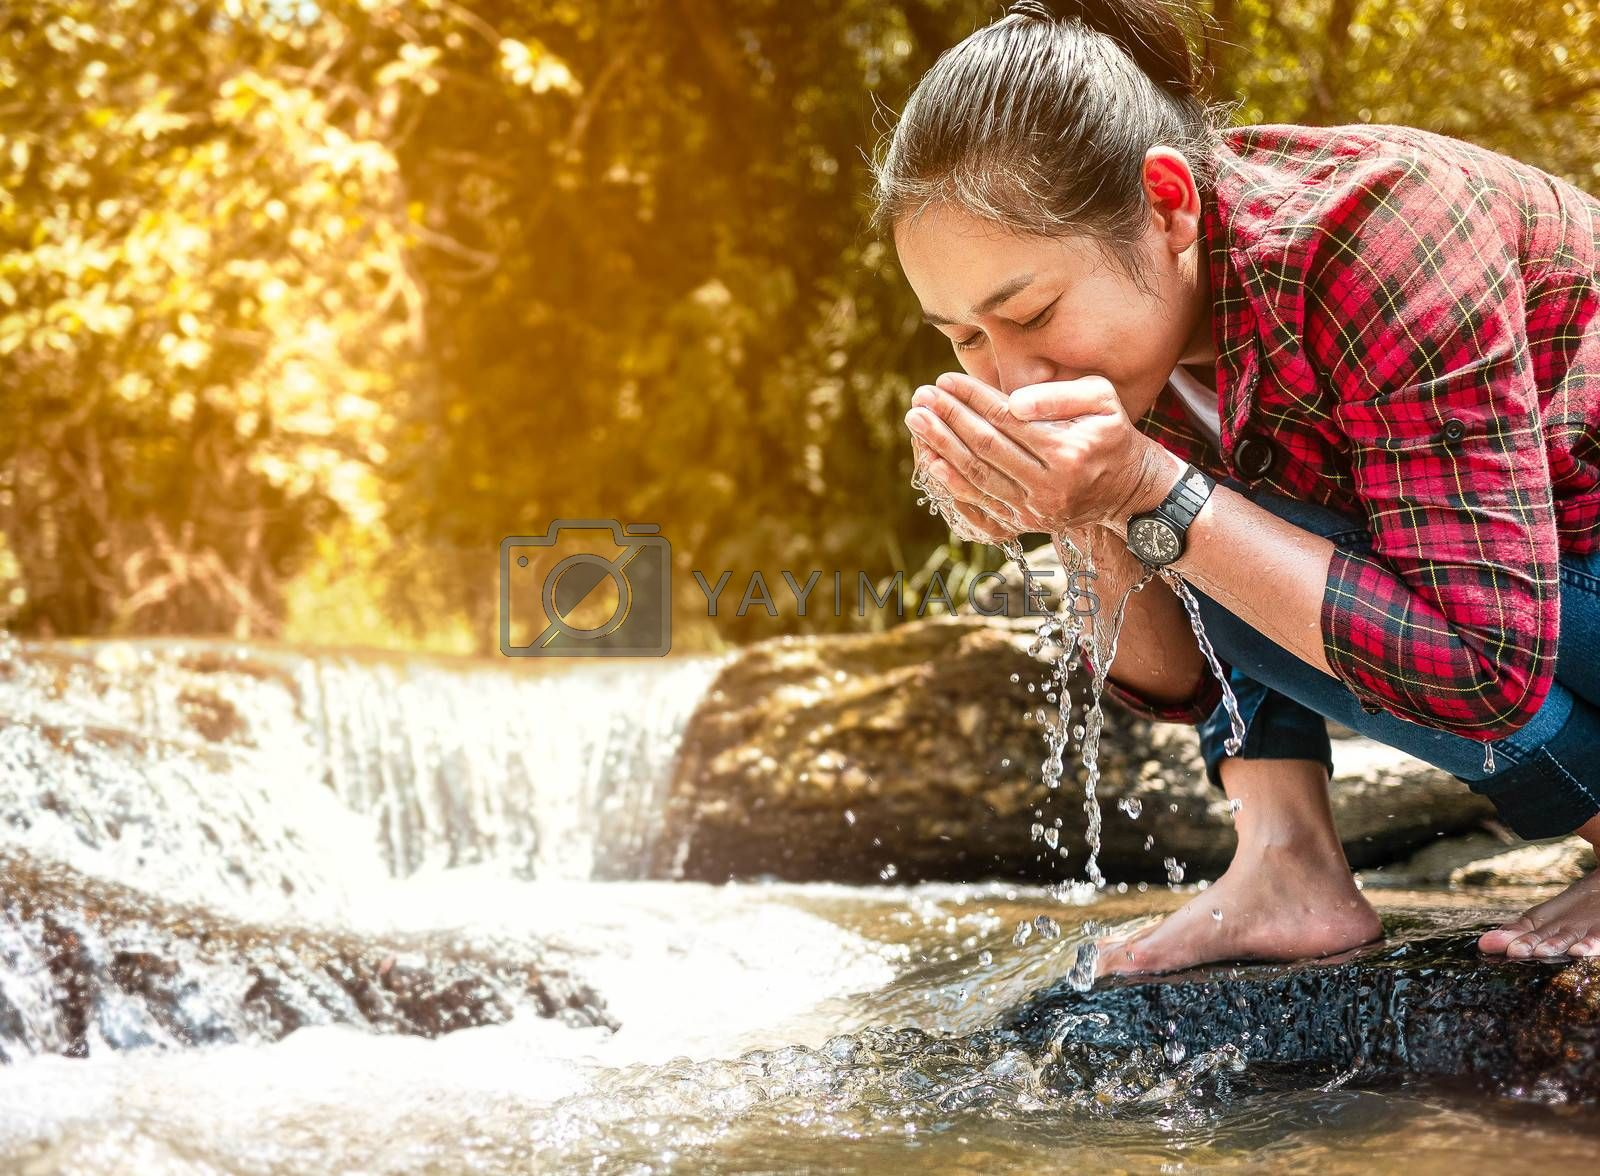 Woman catches running pure water in her cupped hands at waterfall. Conservation of natural resources.